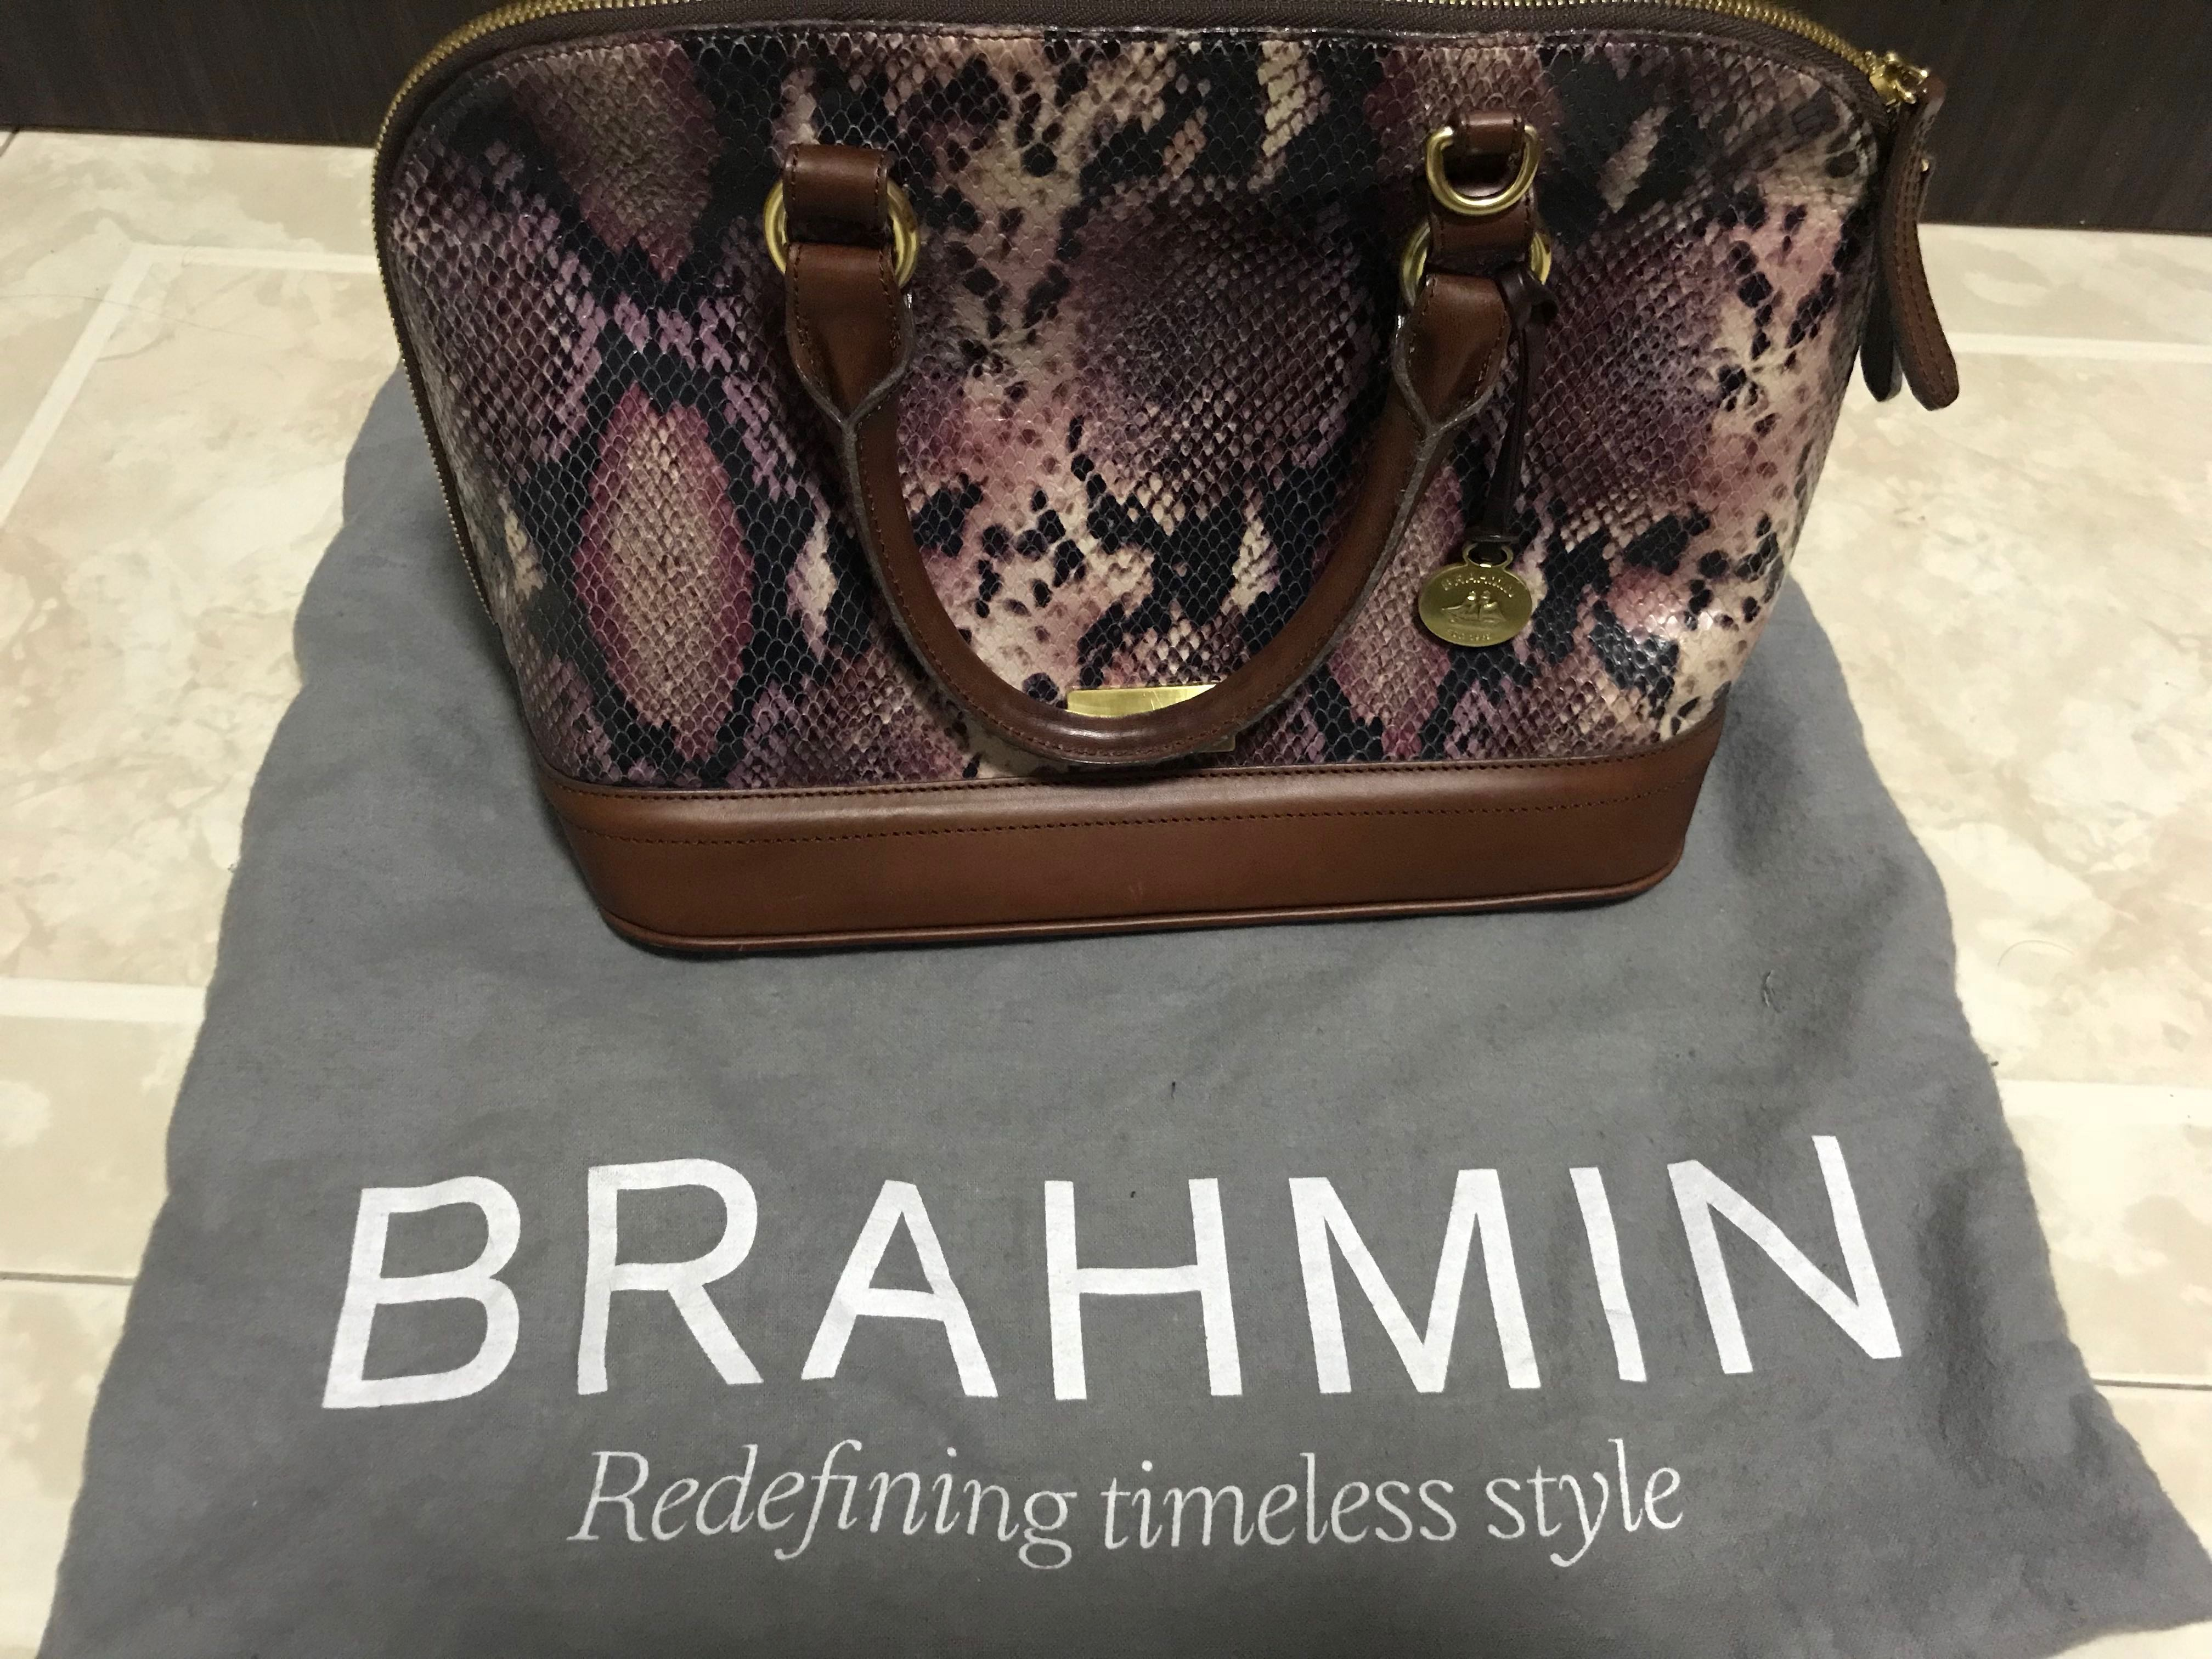 Are Brahmin Bags Real Leather